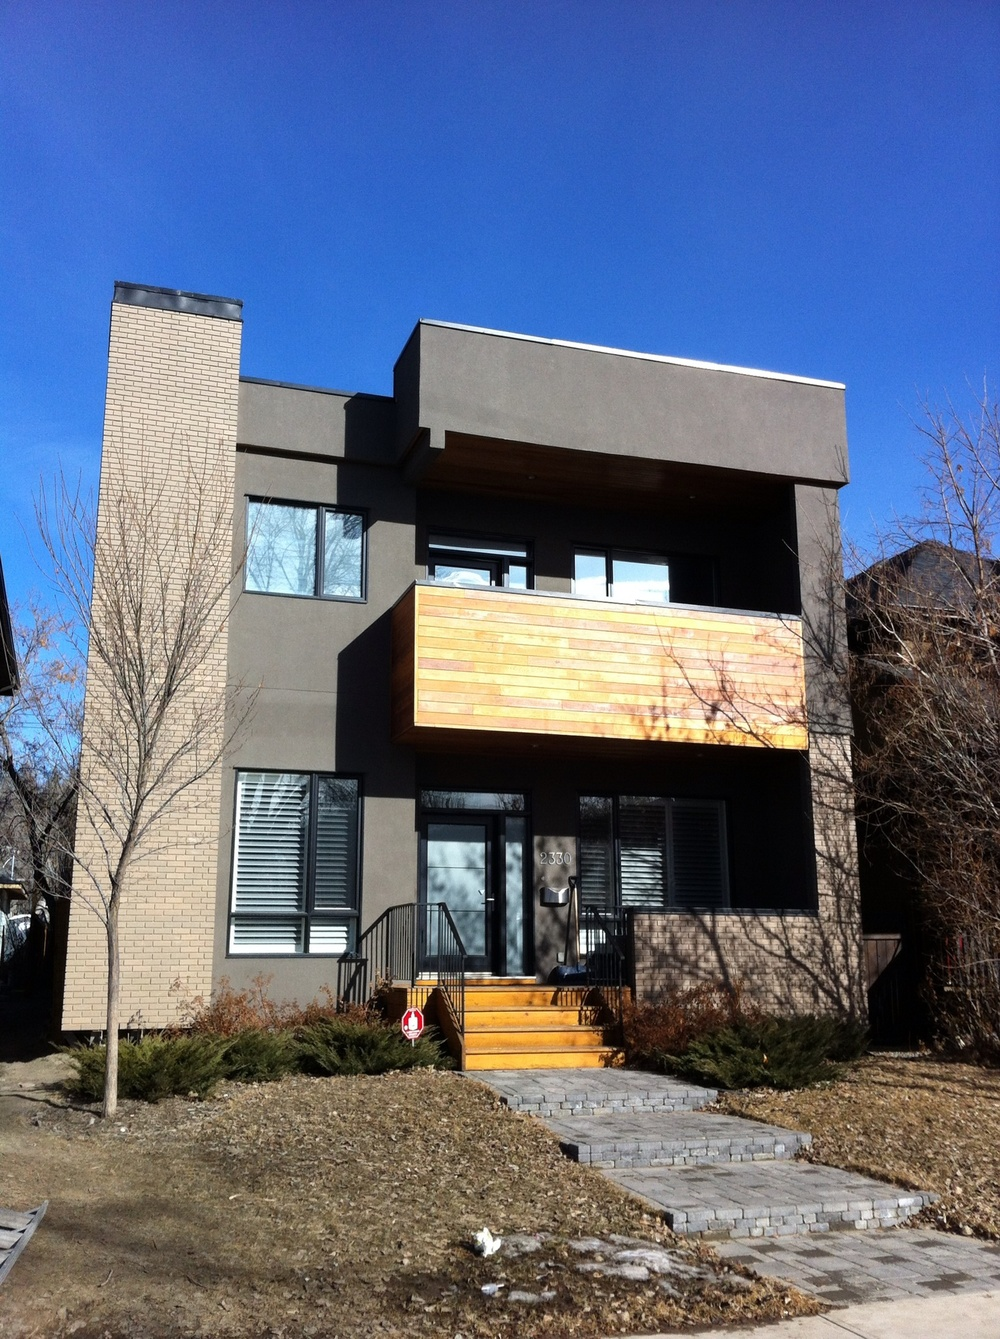 example of post modern home combining brick wood stucco that speaks to the future rather than the past